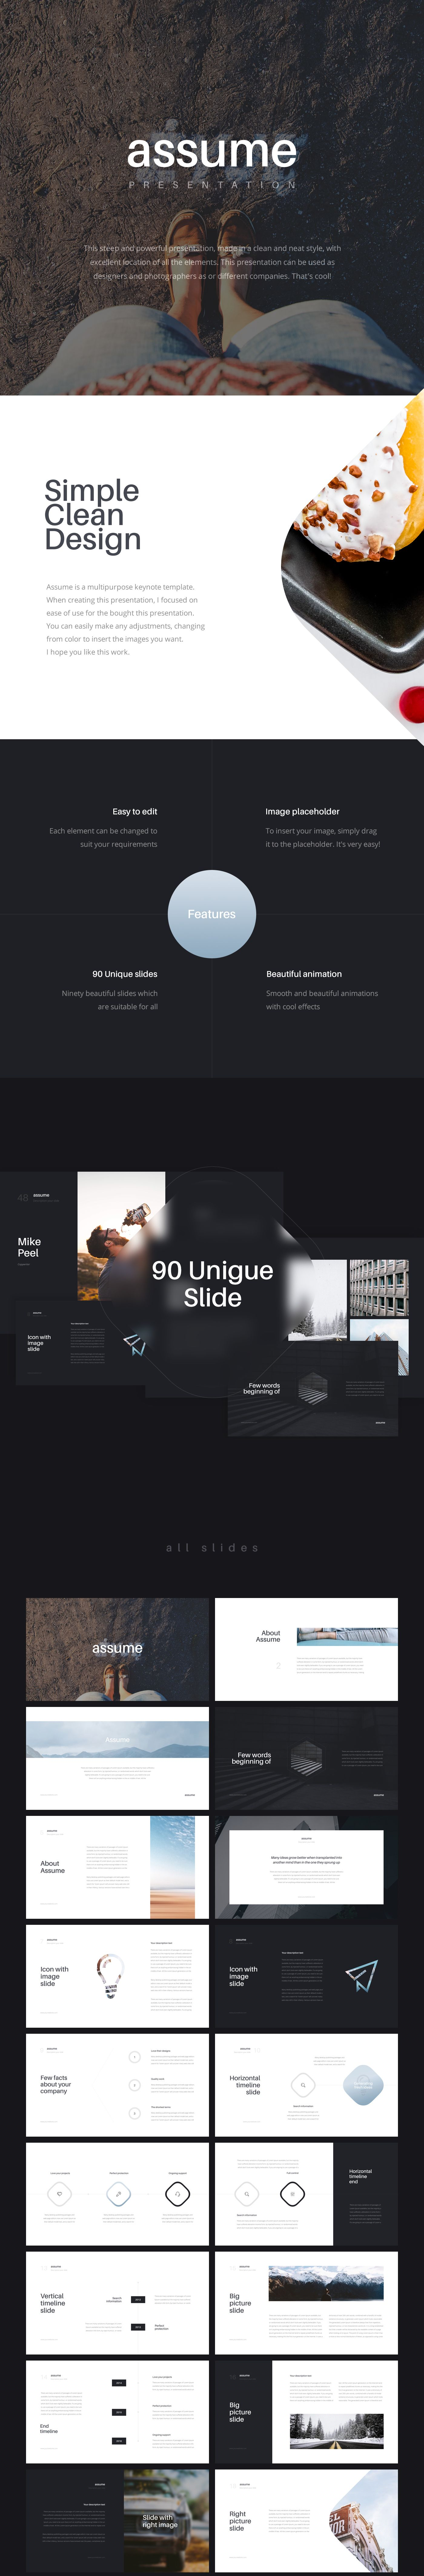 Assume keynote and powerpoint template free sample on behance assume keynote and powerpoint template free sample on behance toneelgroepblik Gallery